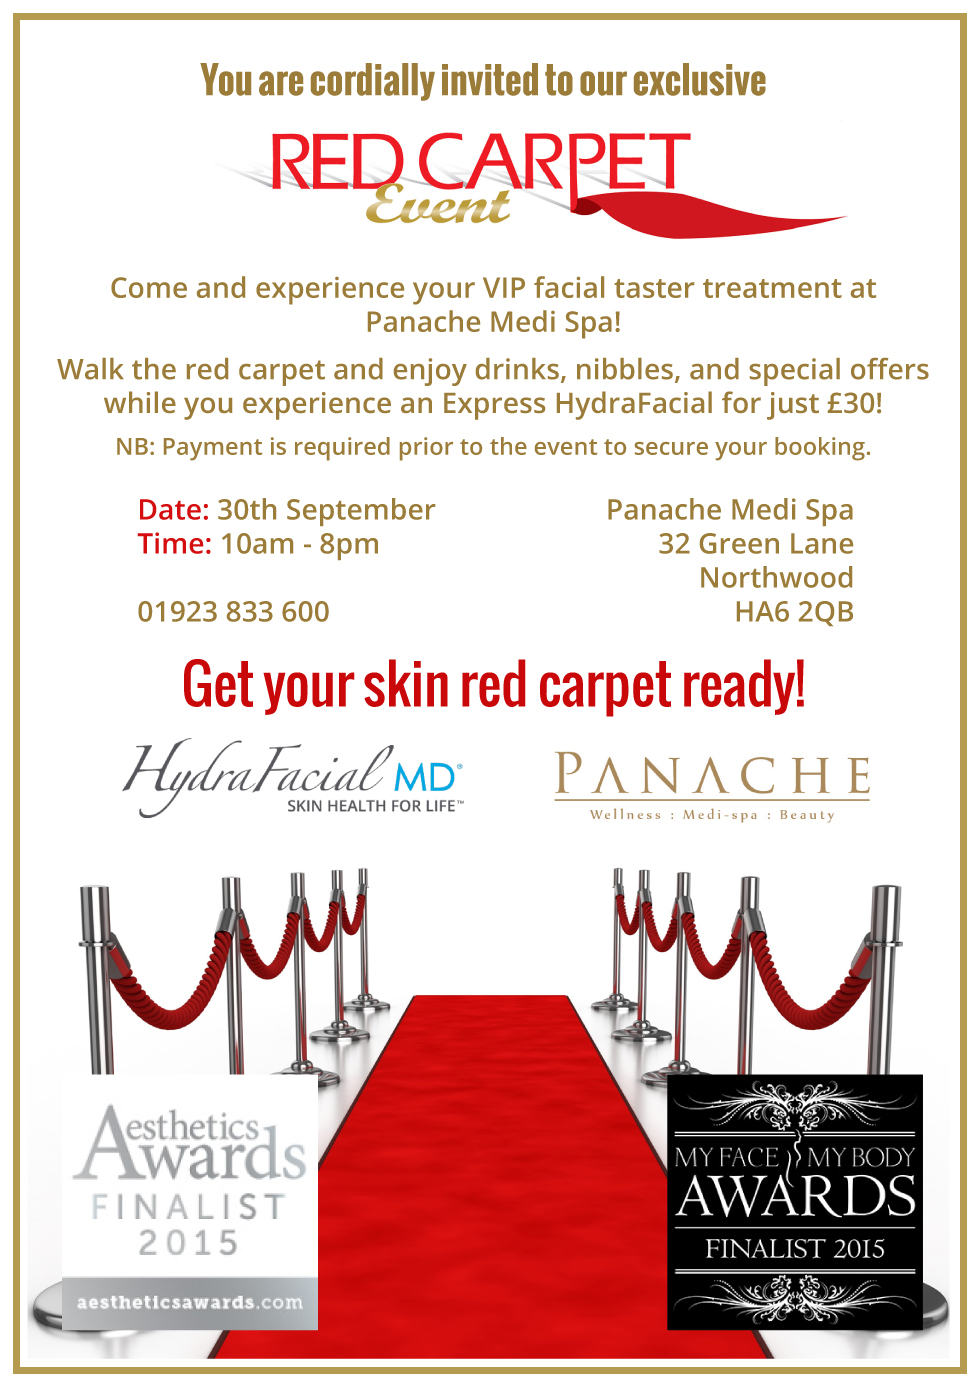 Panache-Red-Carpet-Event-Poster